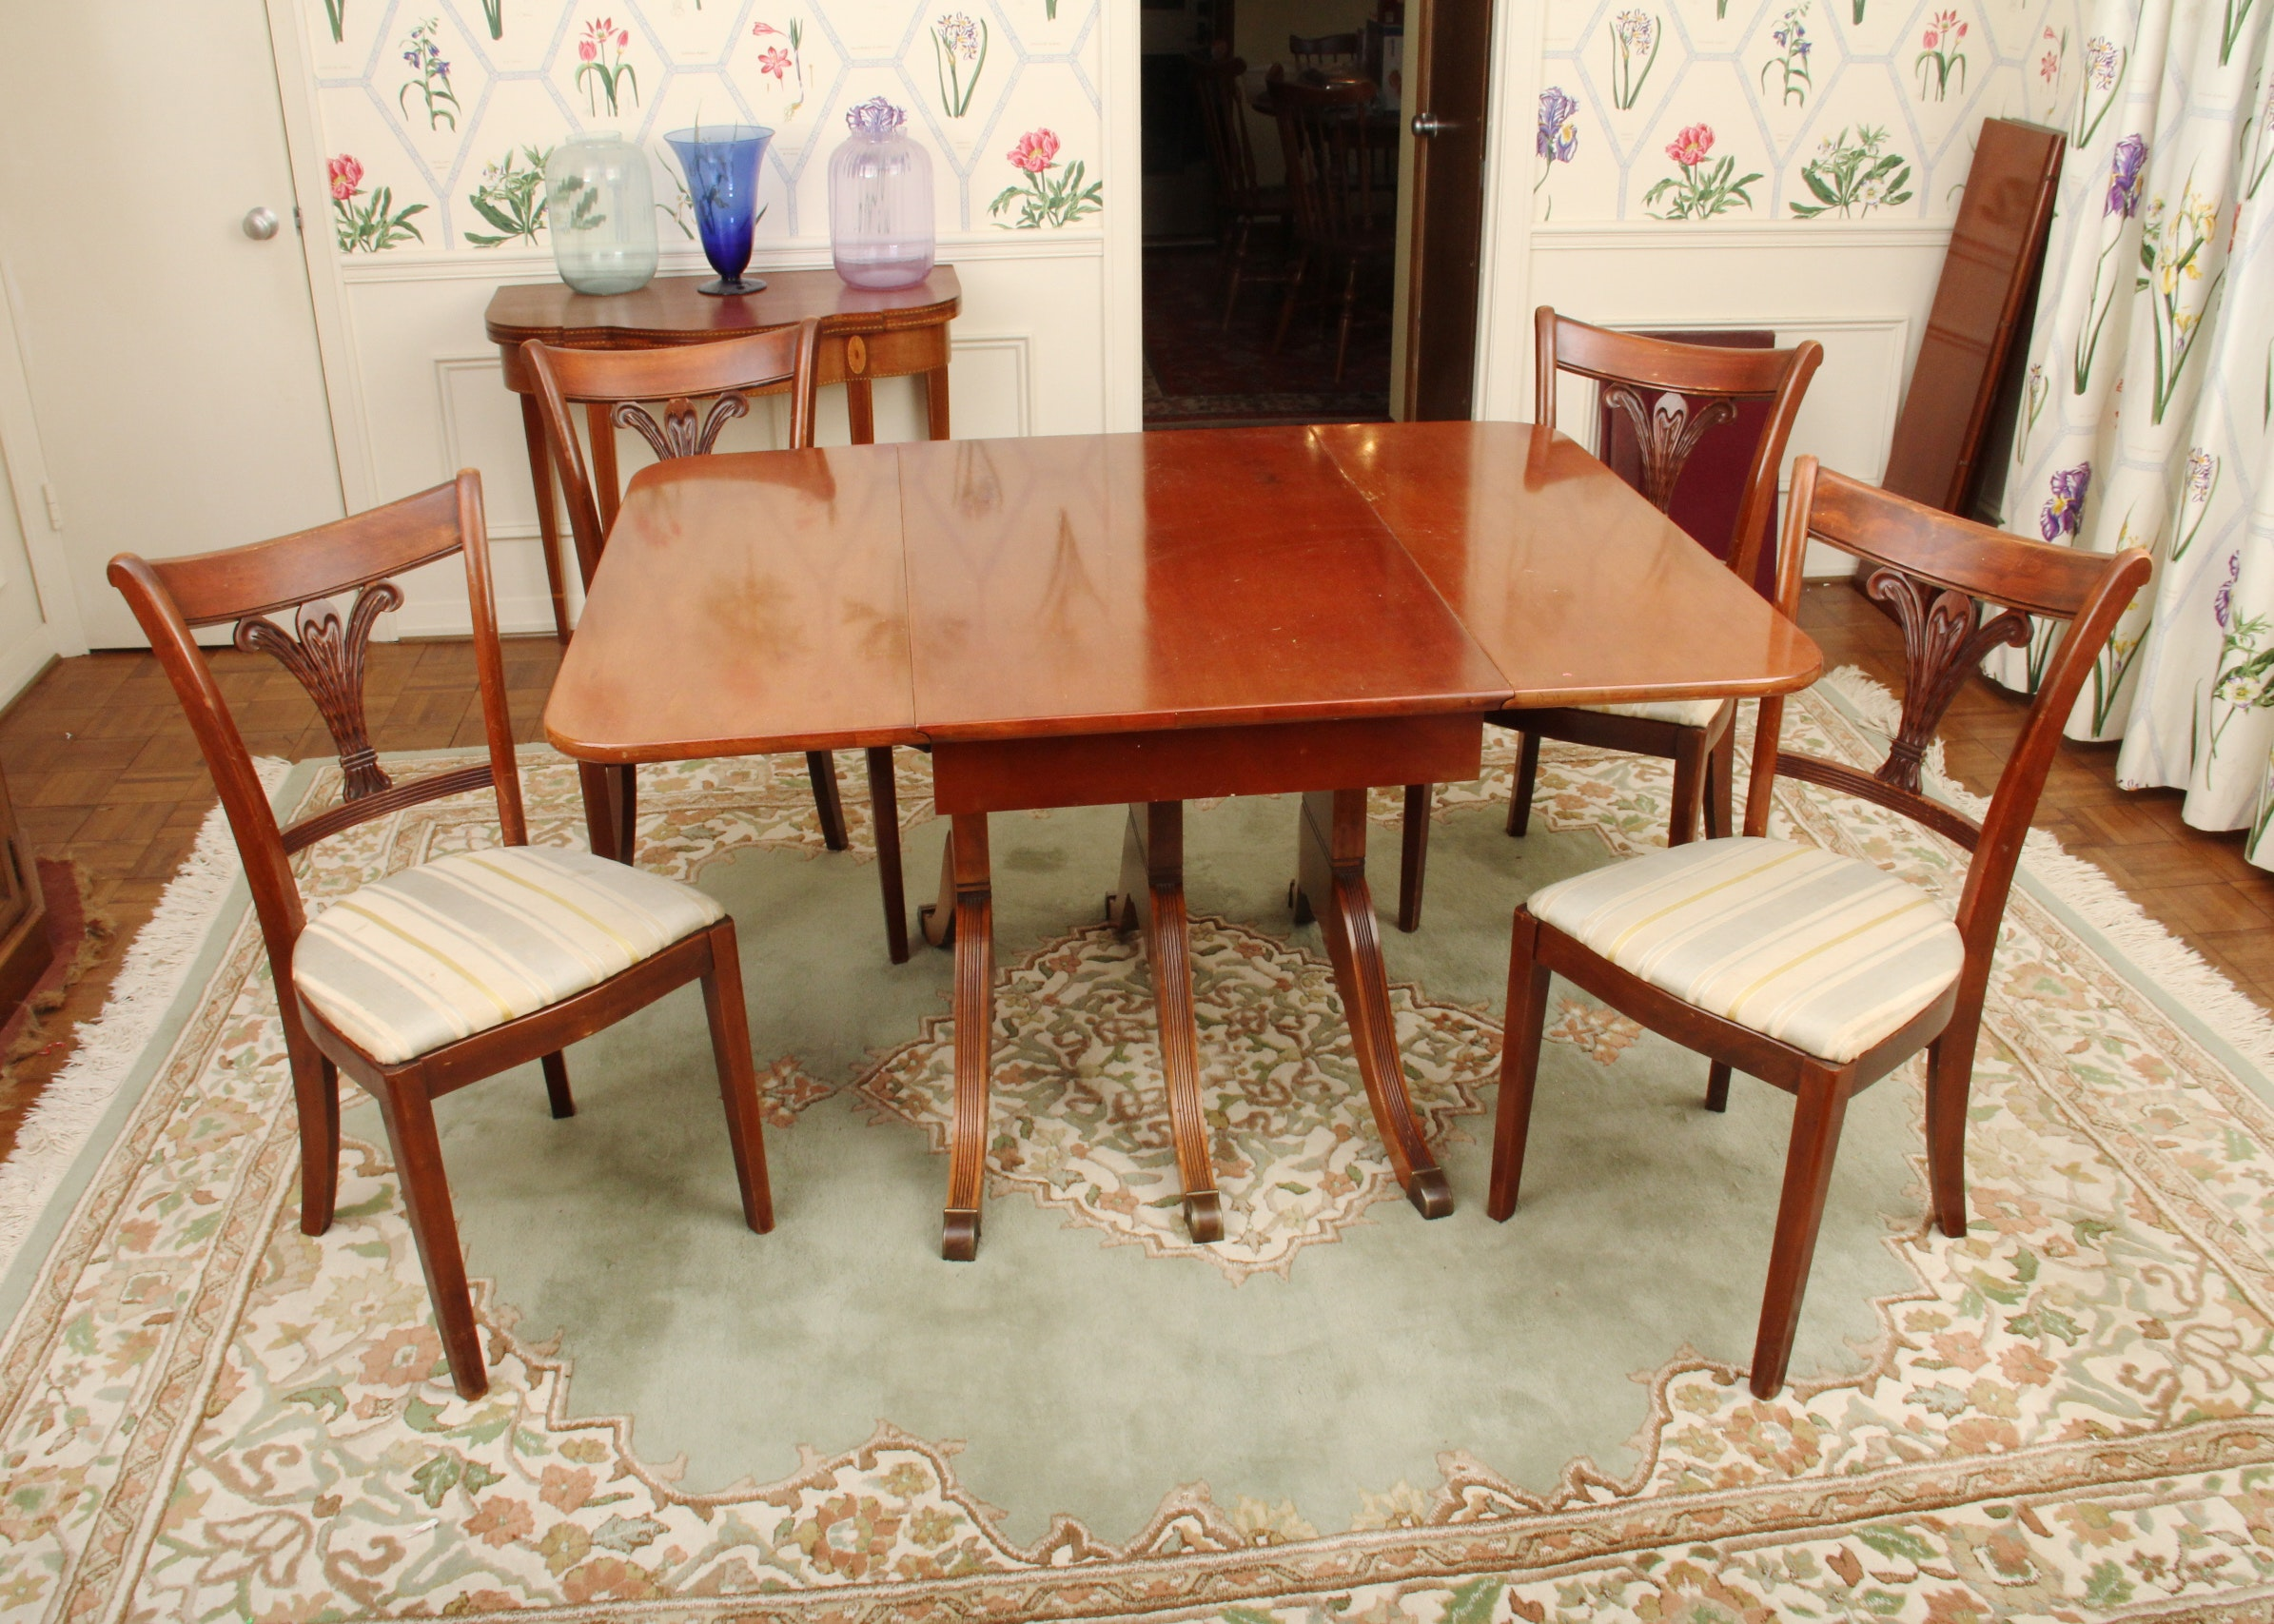 Duncan phyfe rose back chairs - Duncan Phyfe Style Dining Room Table And Chairs